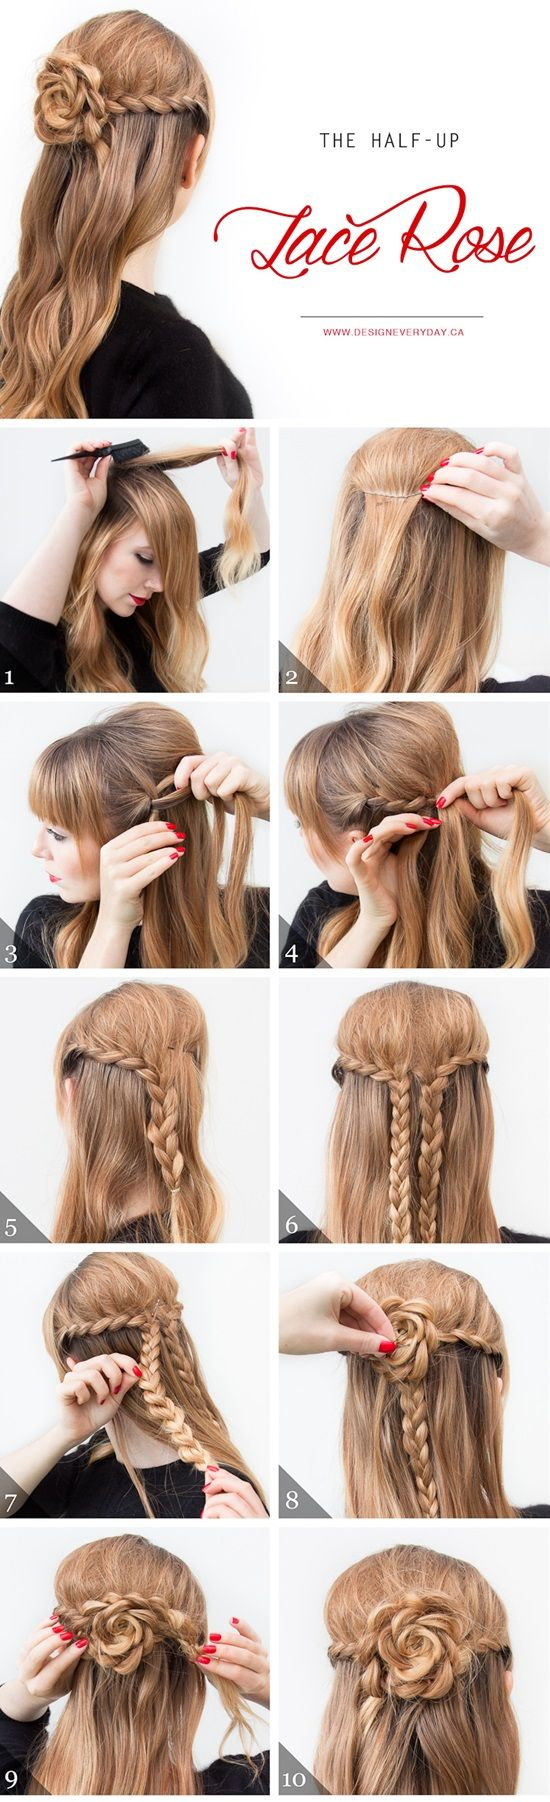 14 Bold & Unique Hairstyle Tutorials You Can Do At Home #easyupdo